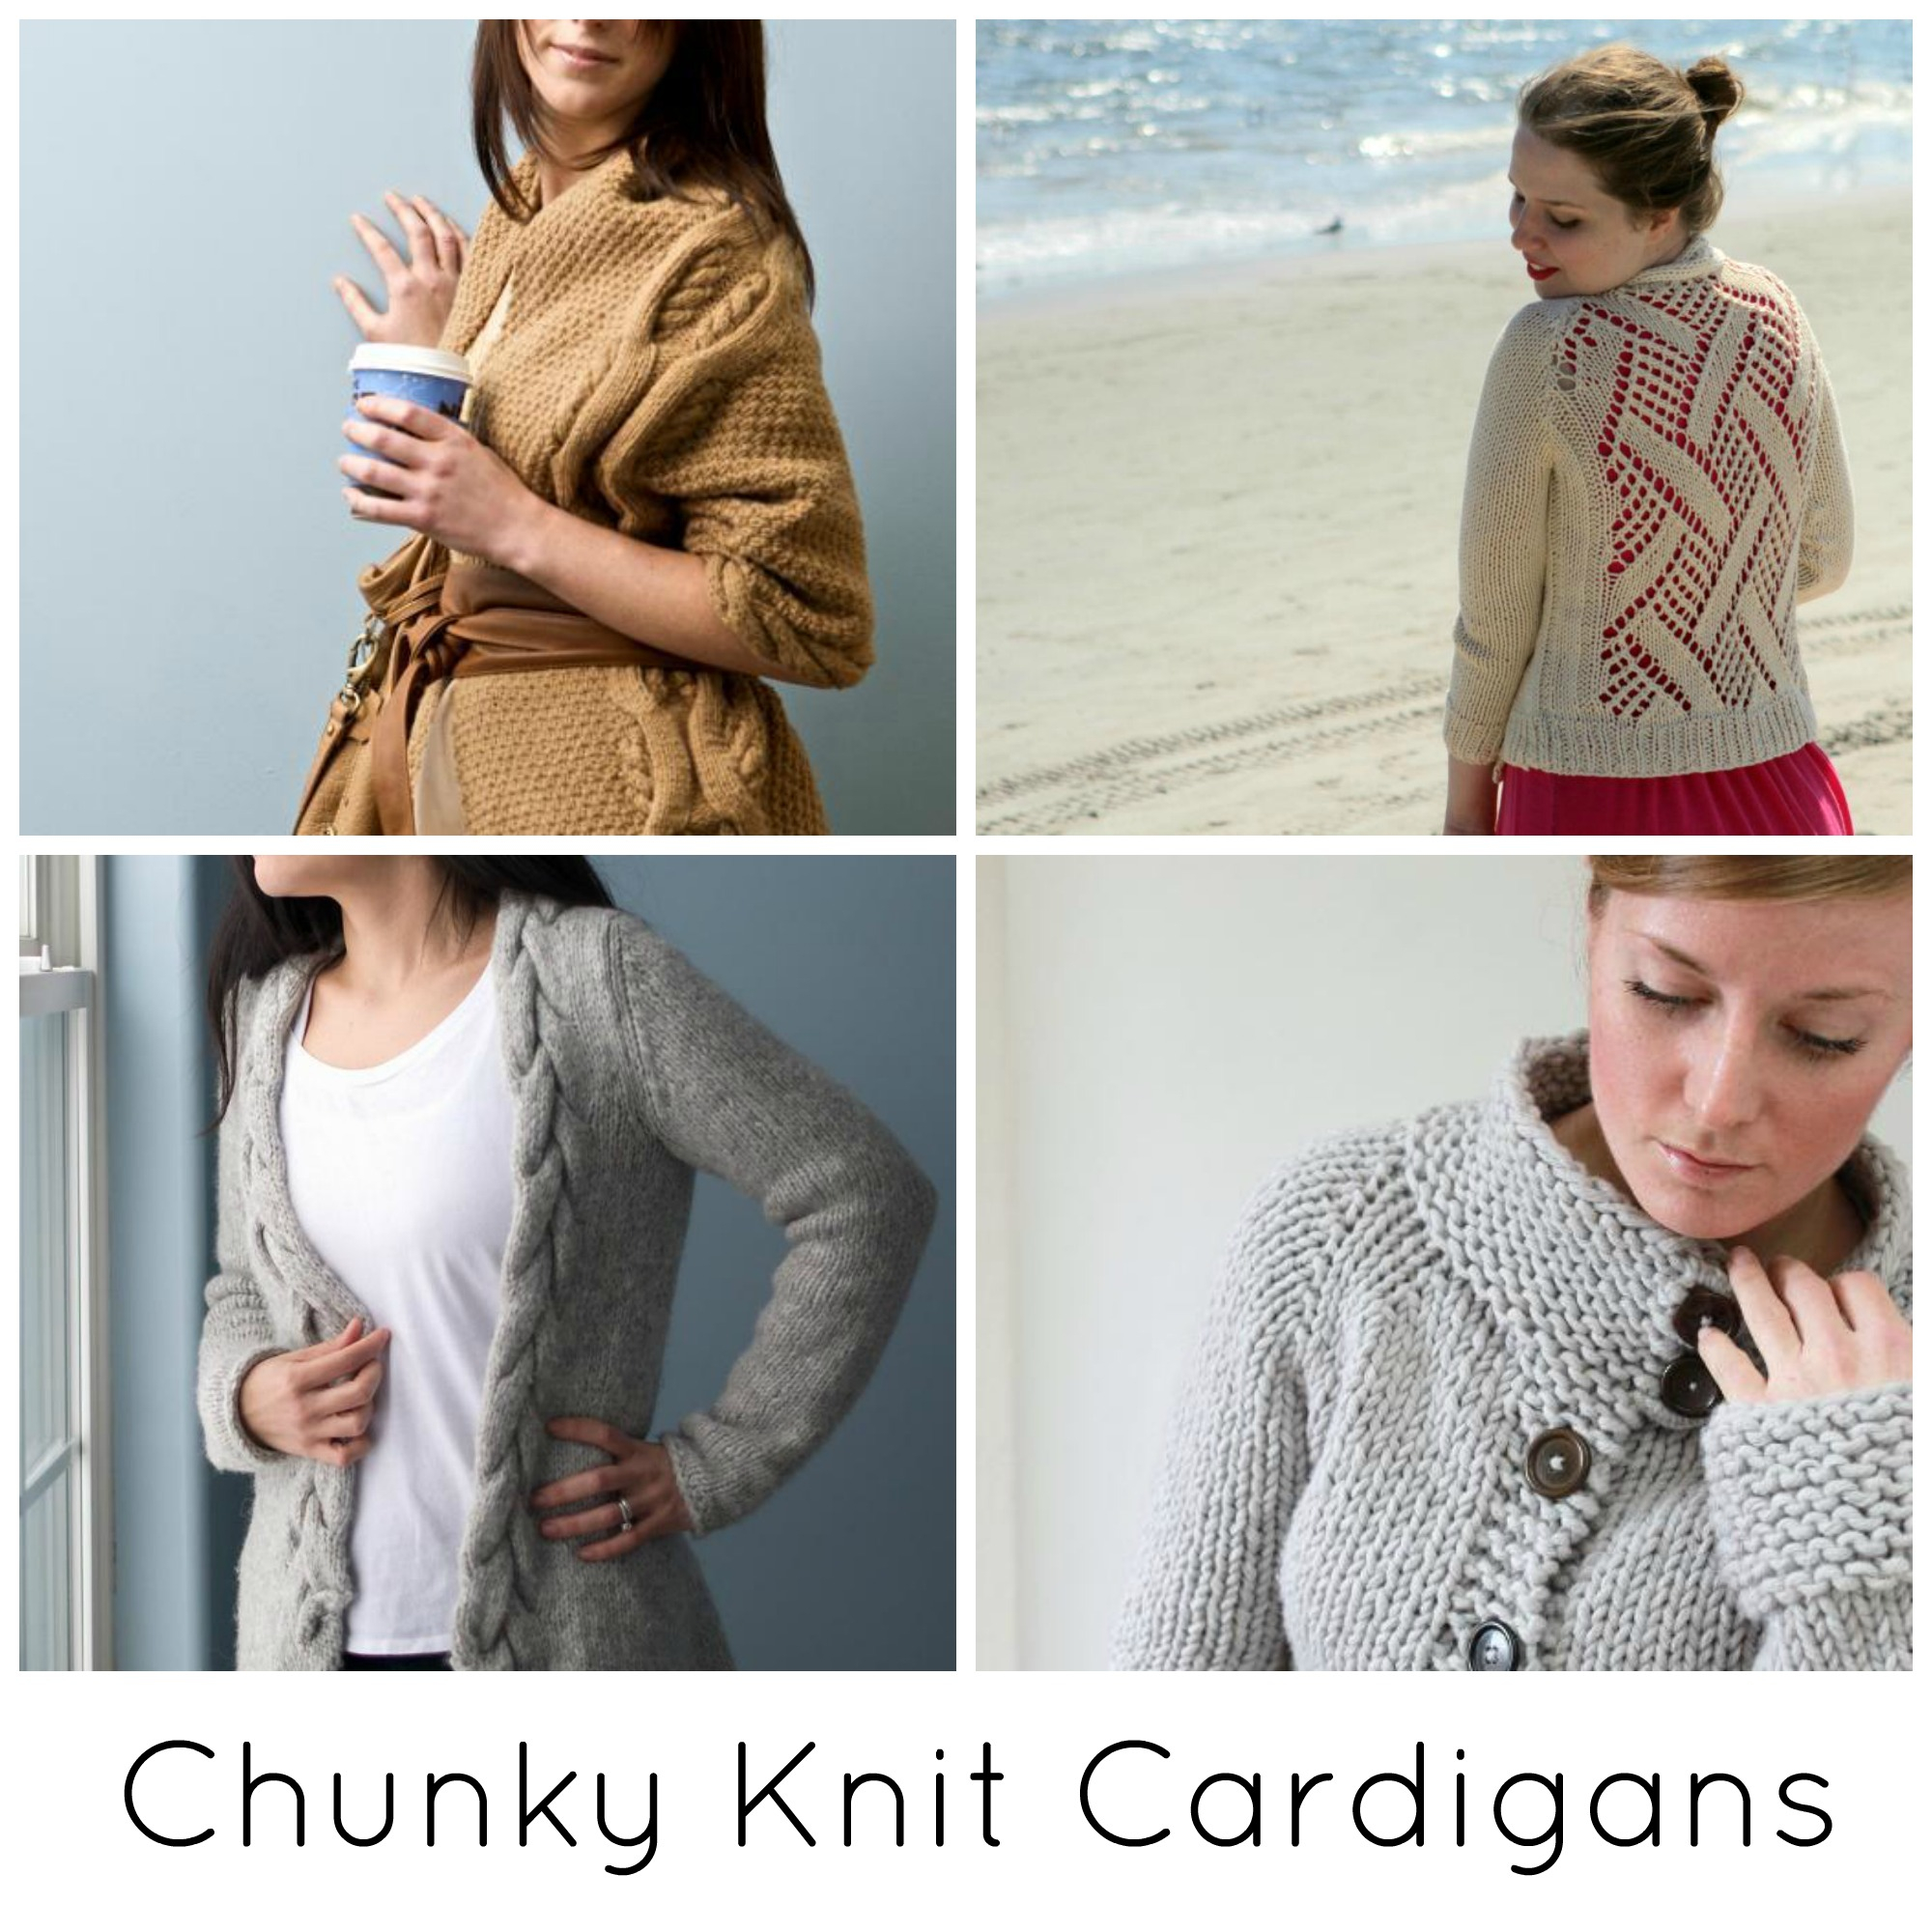 Knitted Coat Patterns Forget Store Bought Reasons For Knitting A Coat This Fall